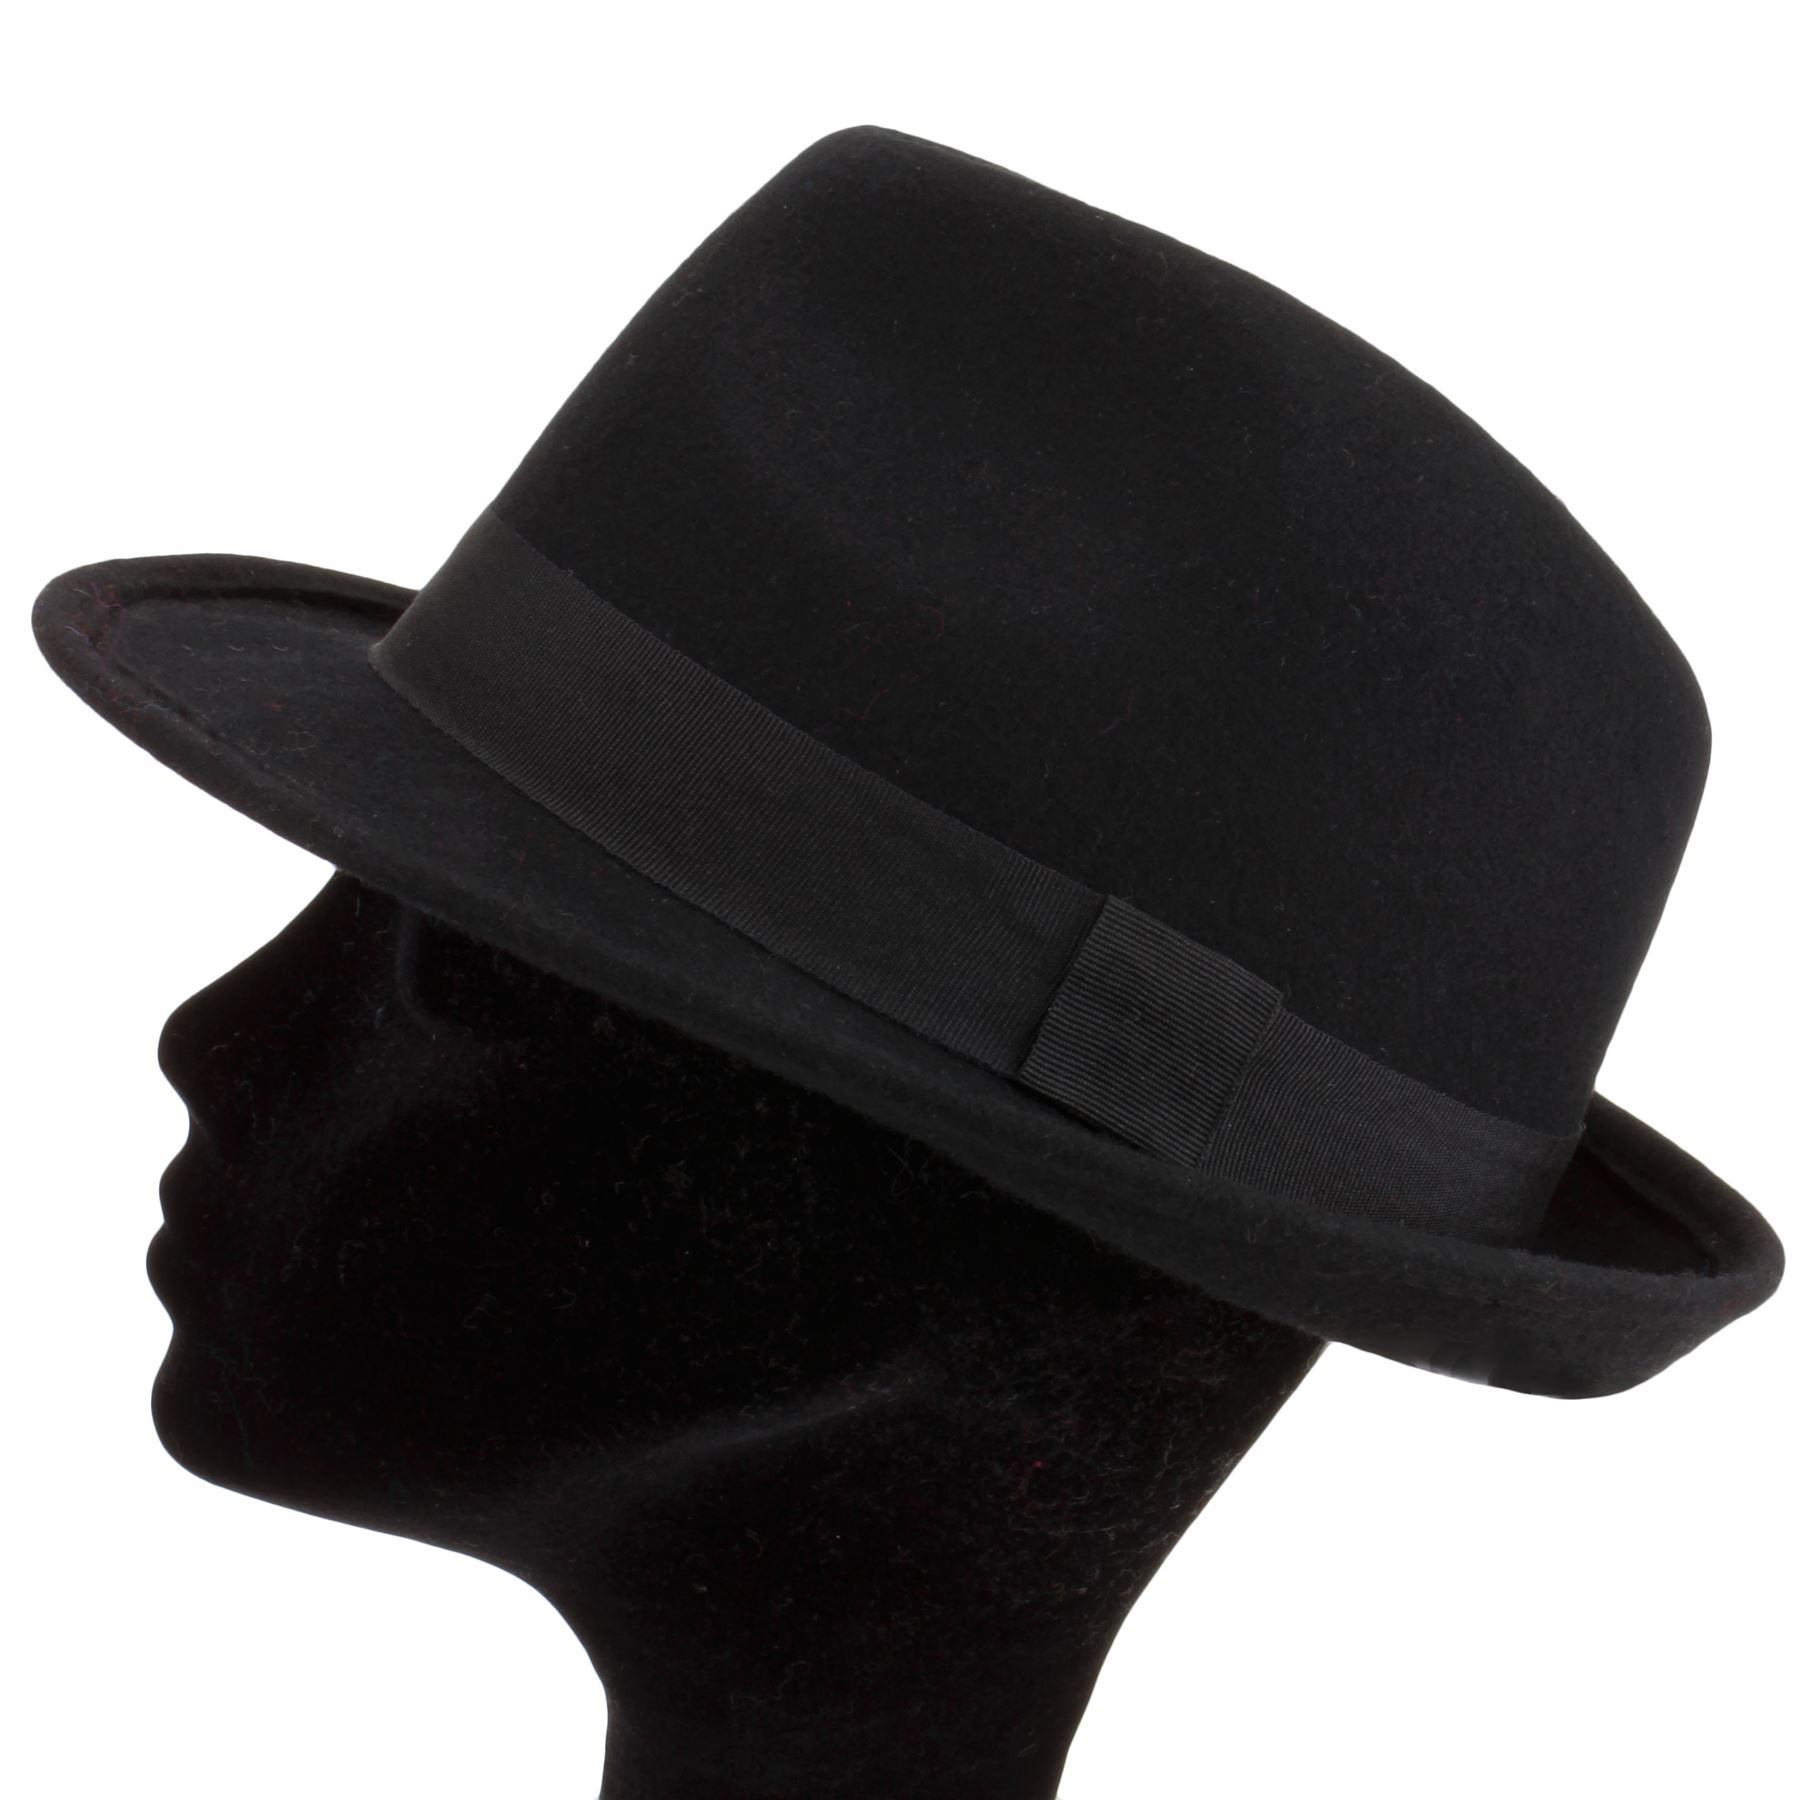 TRILBY HAT 100% WOOL FELT WITH GROSGRAIN BAND FEDORA BLACK or BROWN ... bf5719199a29